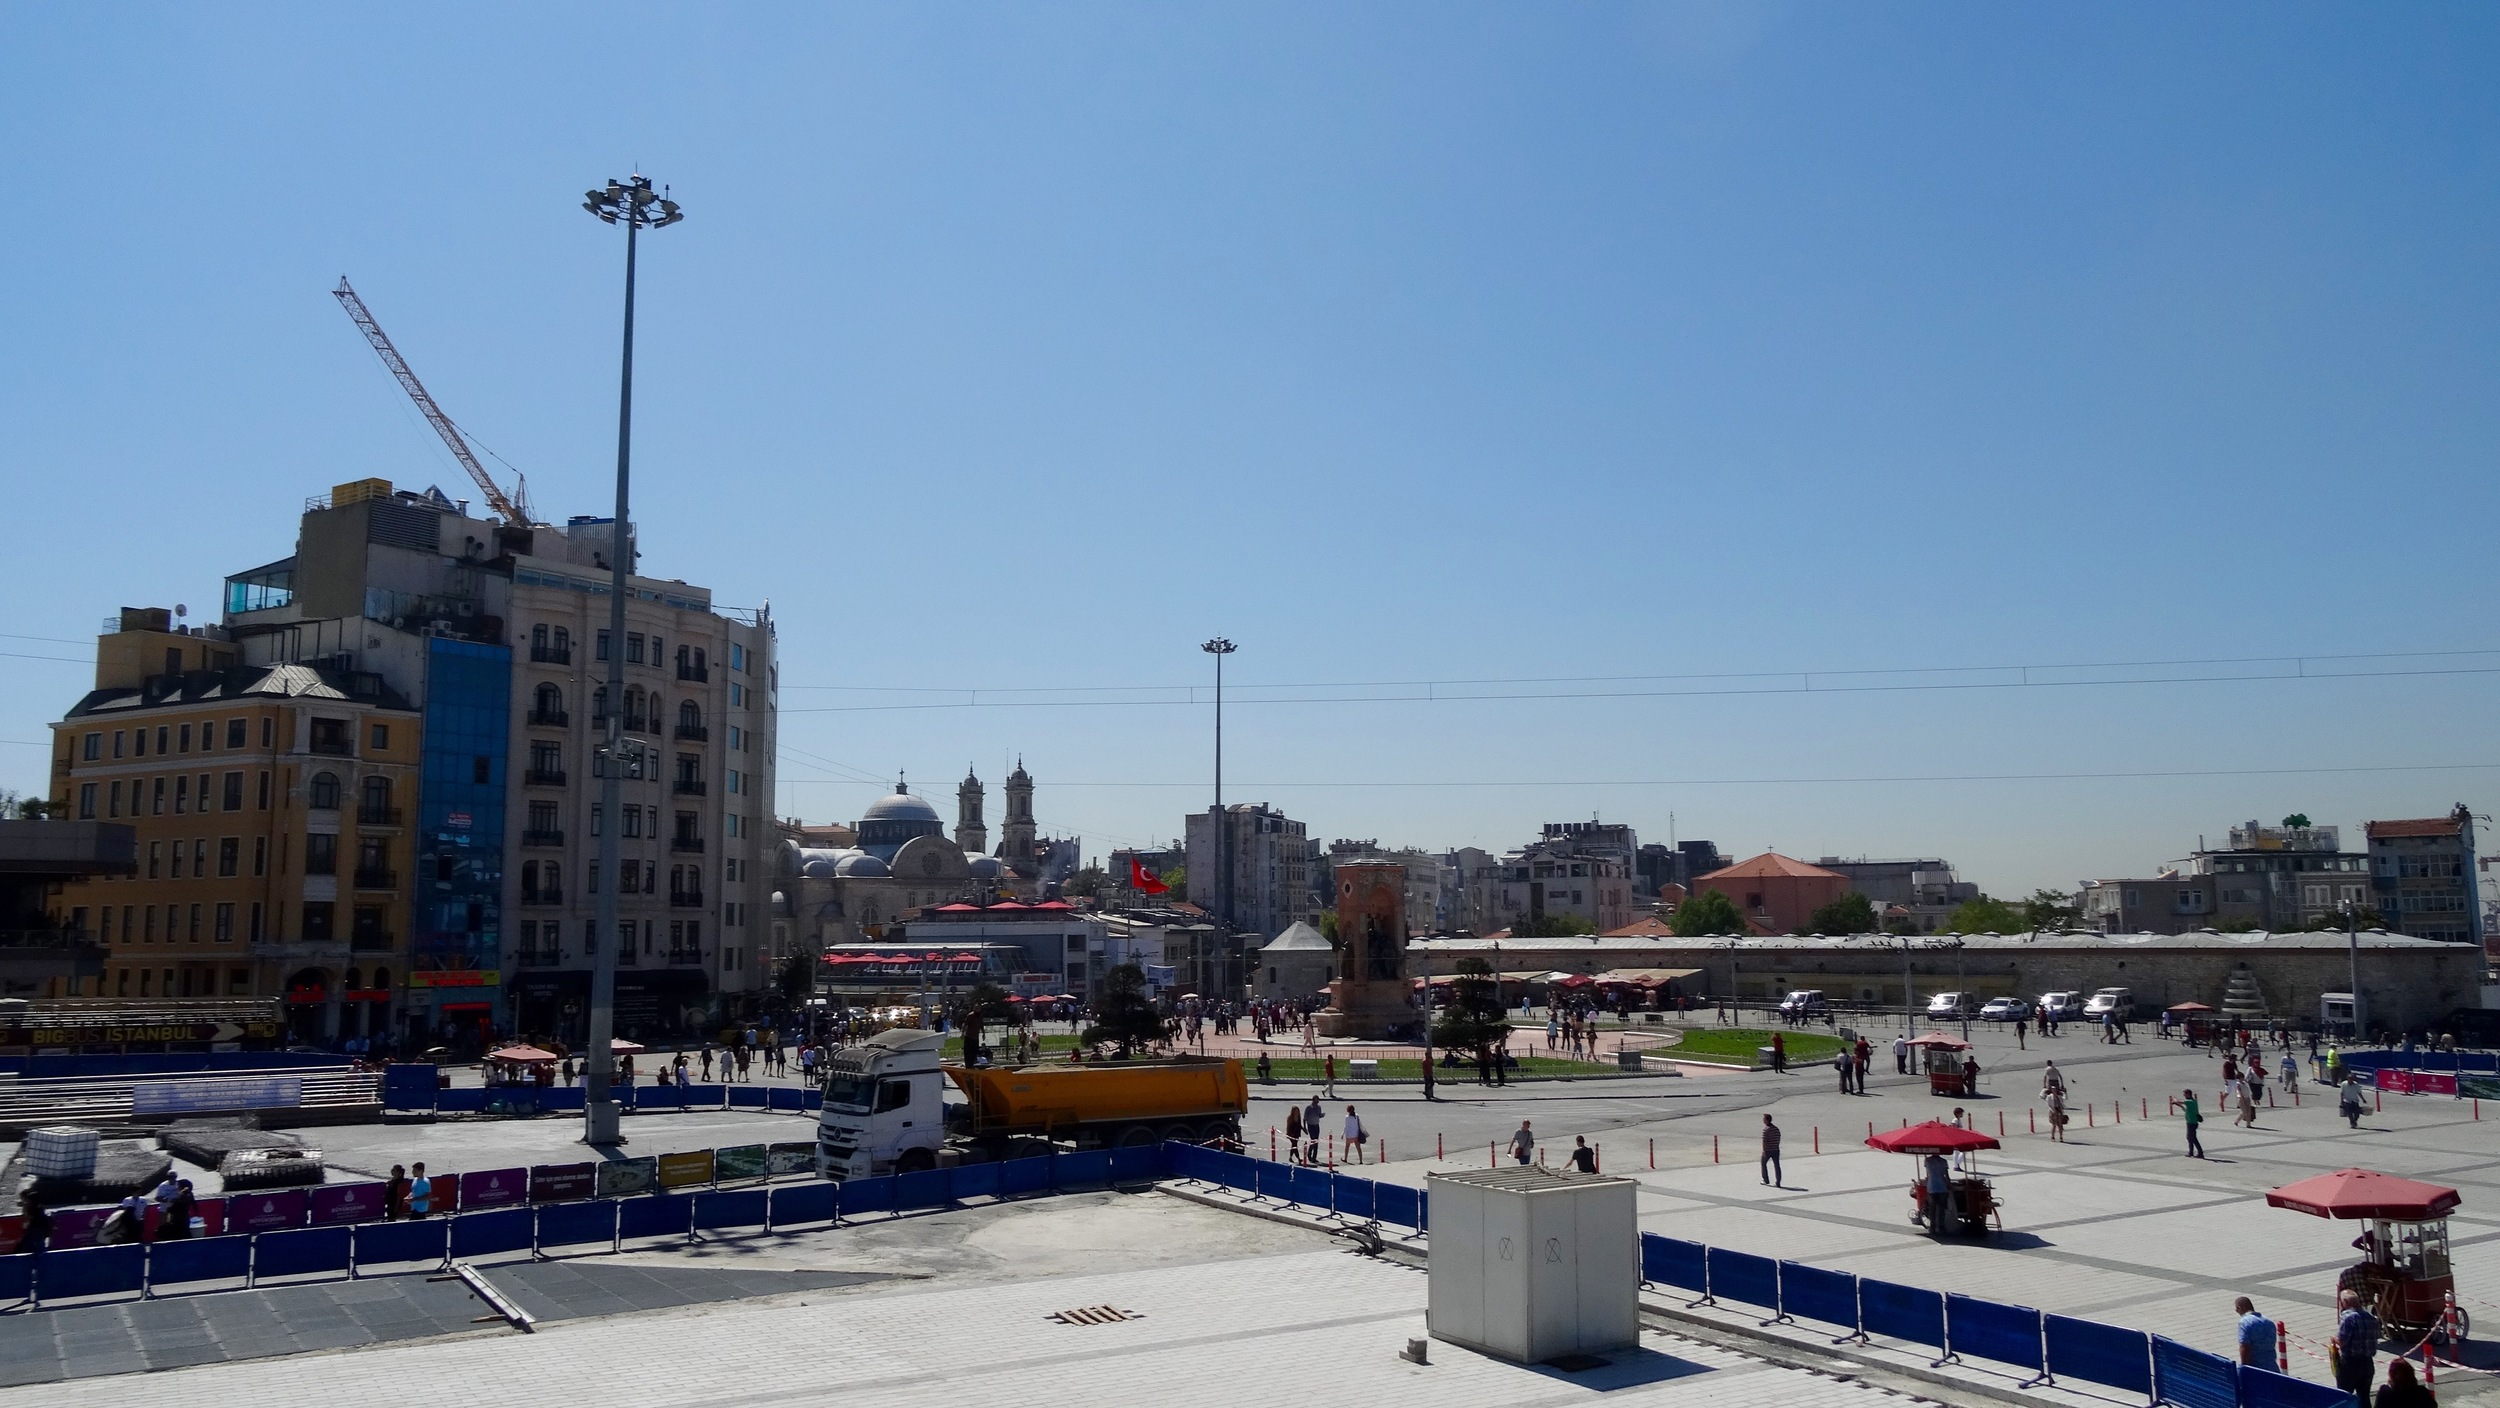 Taksim Square. The heart of Istanbul. This is the site of many demonstrations, including the 2013 Gezi Park protests.